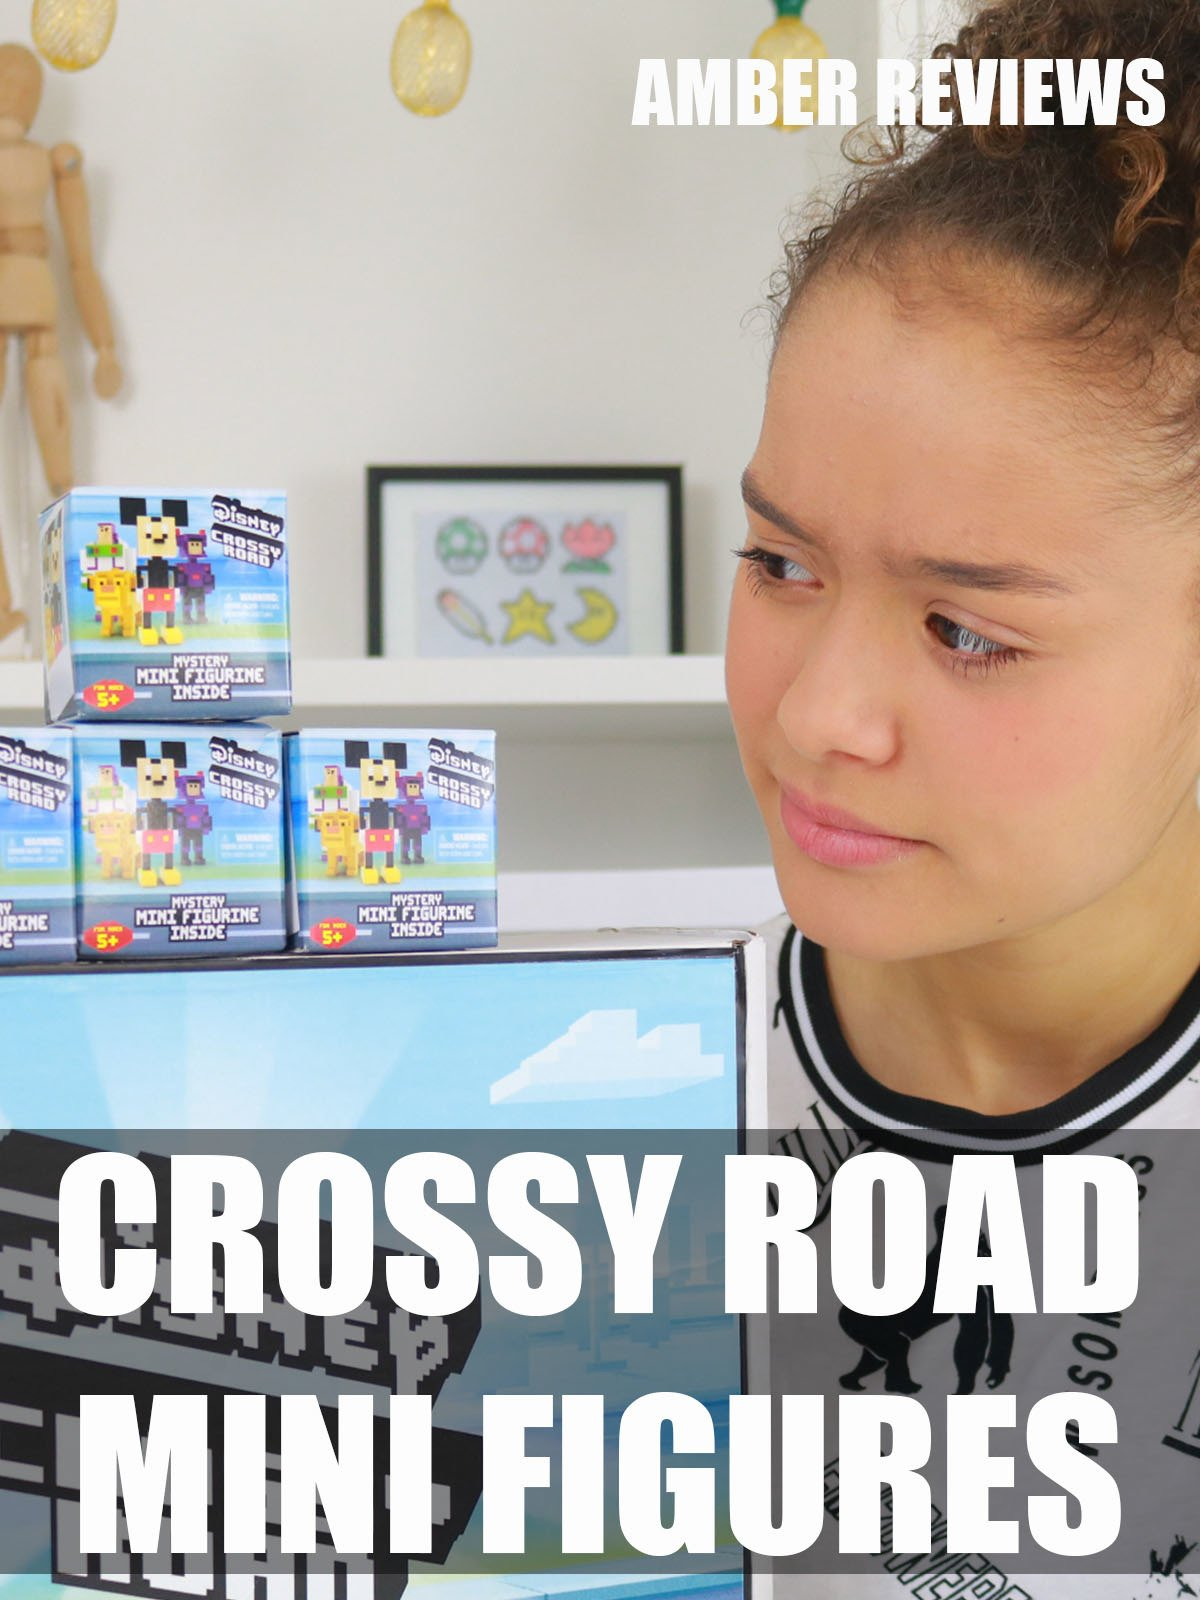 Amber Reviews Crossy Road Mini Figures